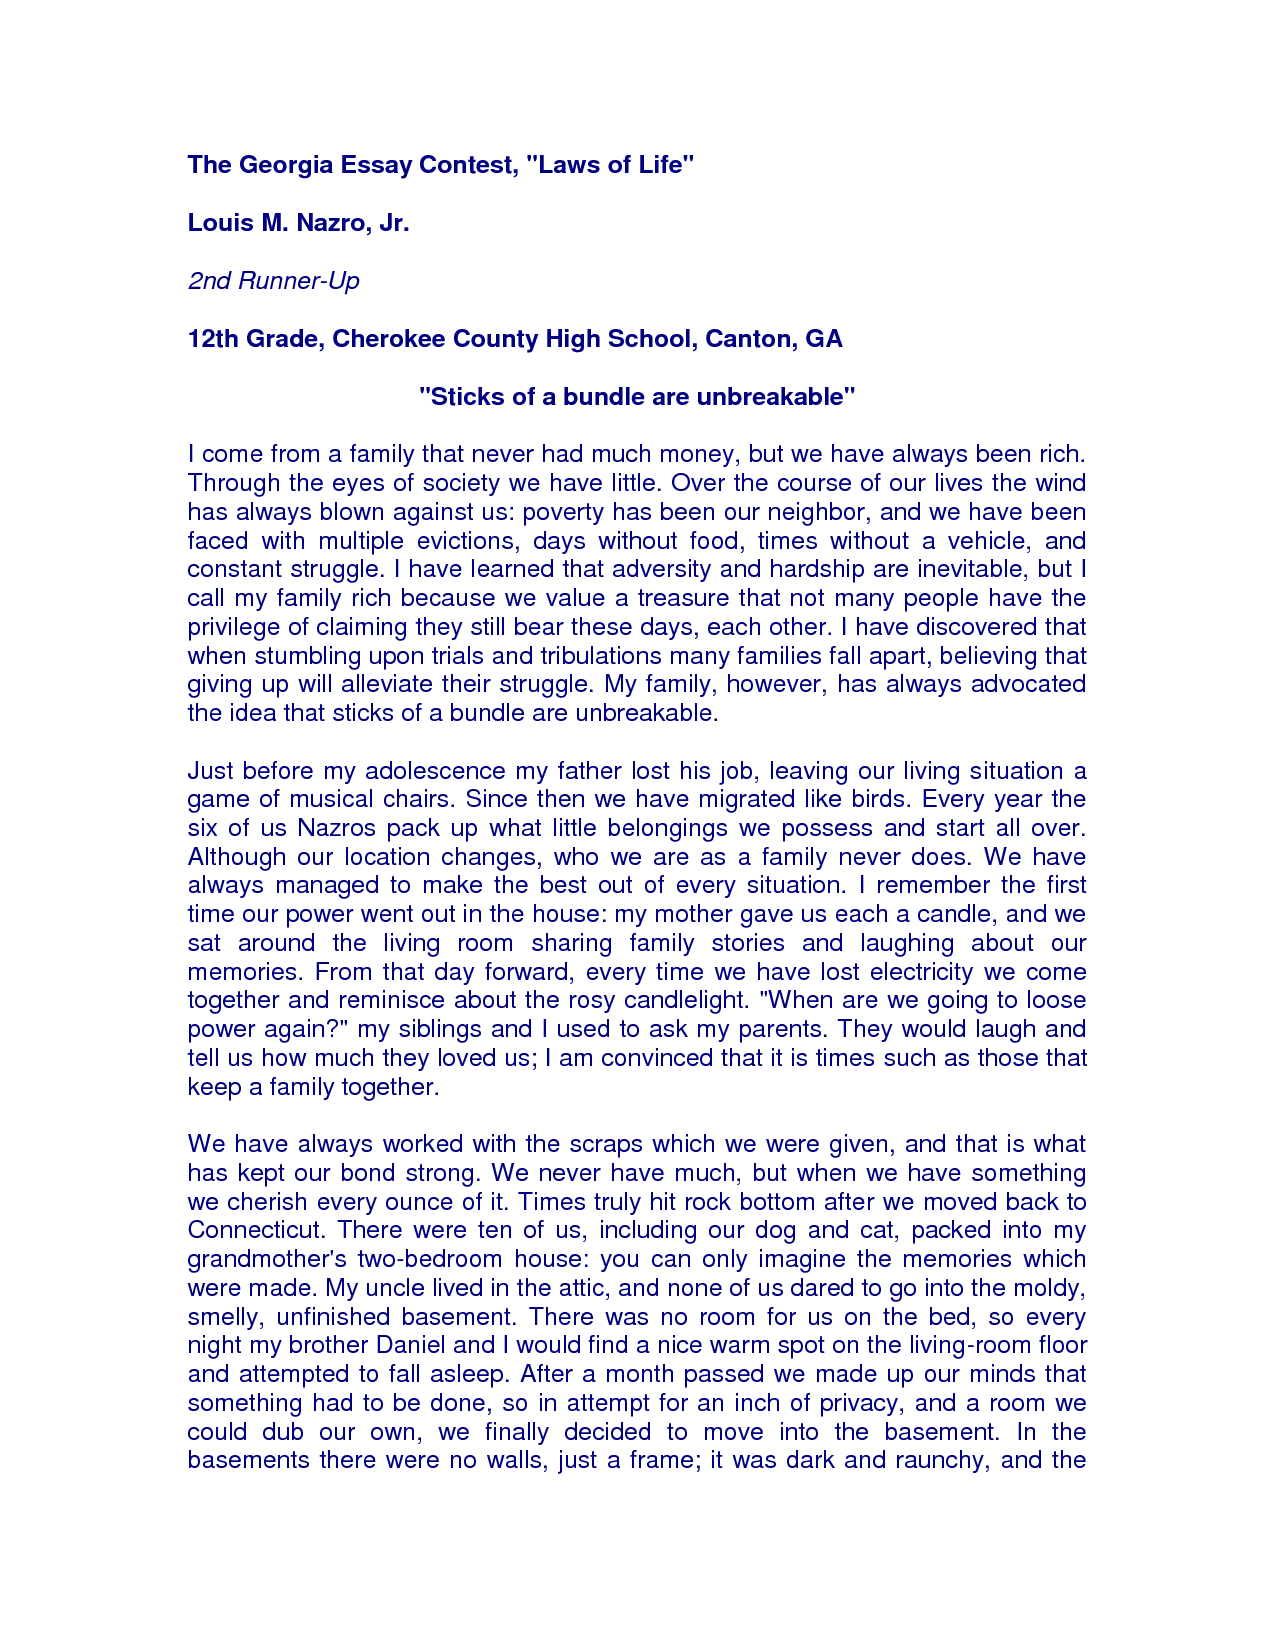 Quotes For College Essays Quotesgram English Extended Essay Topics Essay Time Management Quotes For College Essays Quotesgram Management Essay also Example Essay Thesis